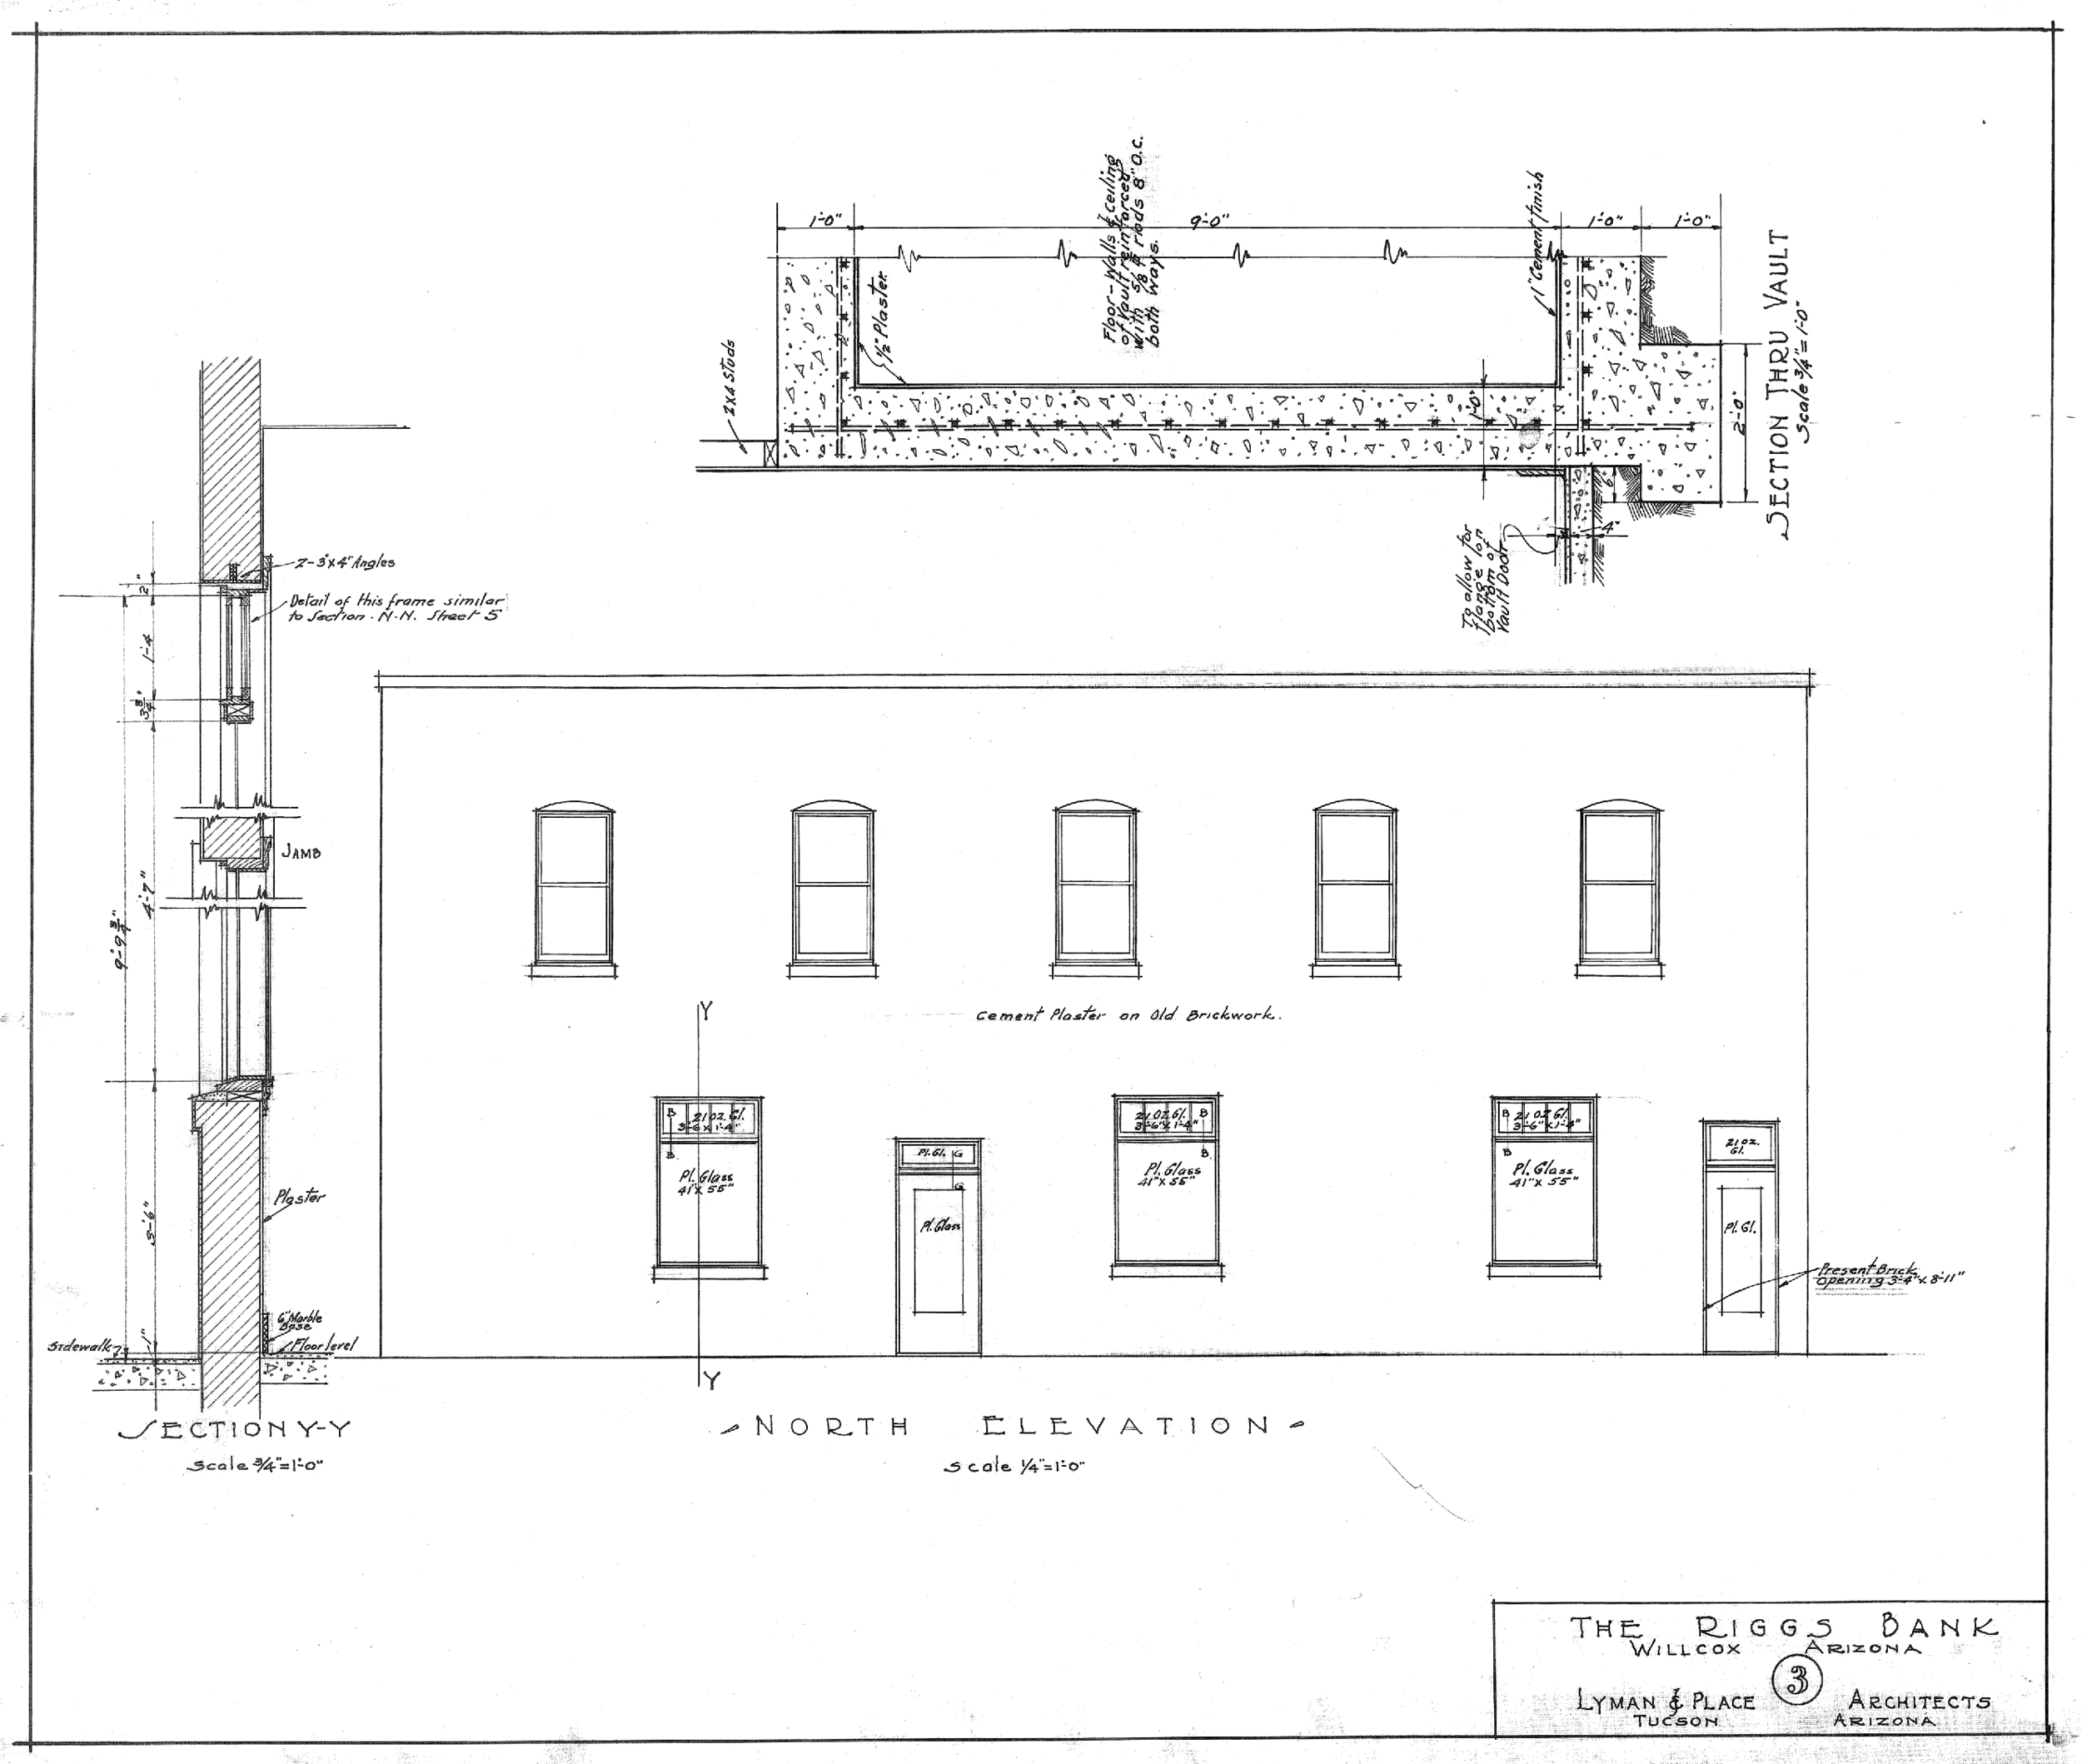 RIGGS BANK BUILDING DRAWING OF THE HASKELL AVENUE ELEVATION